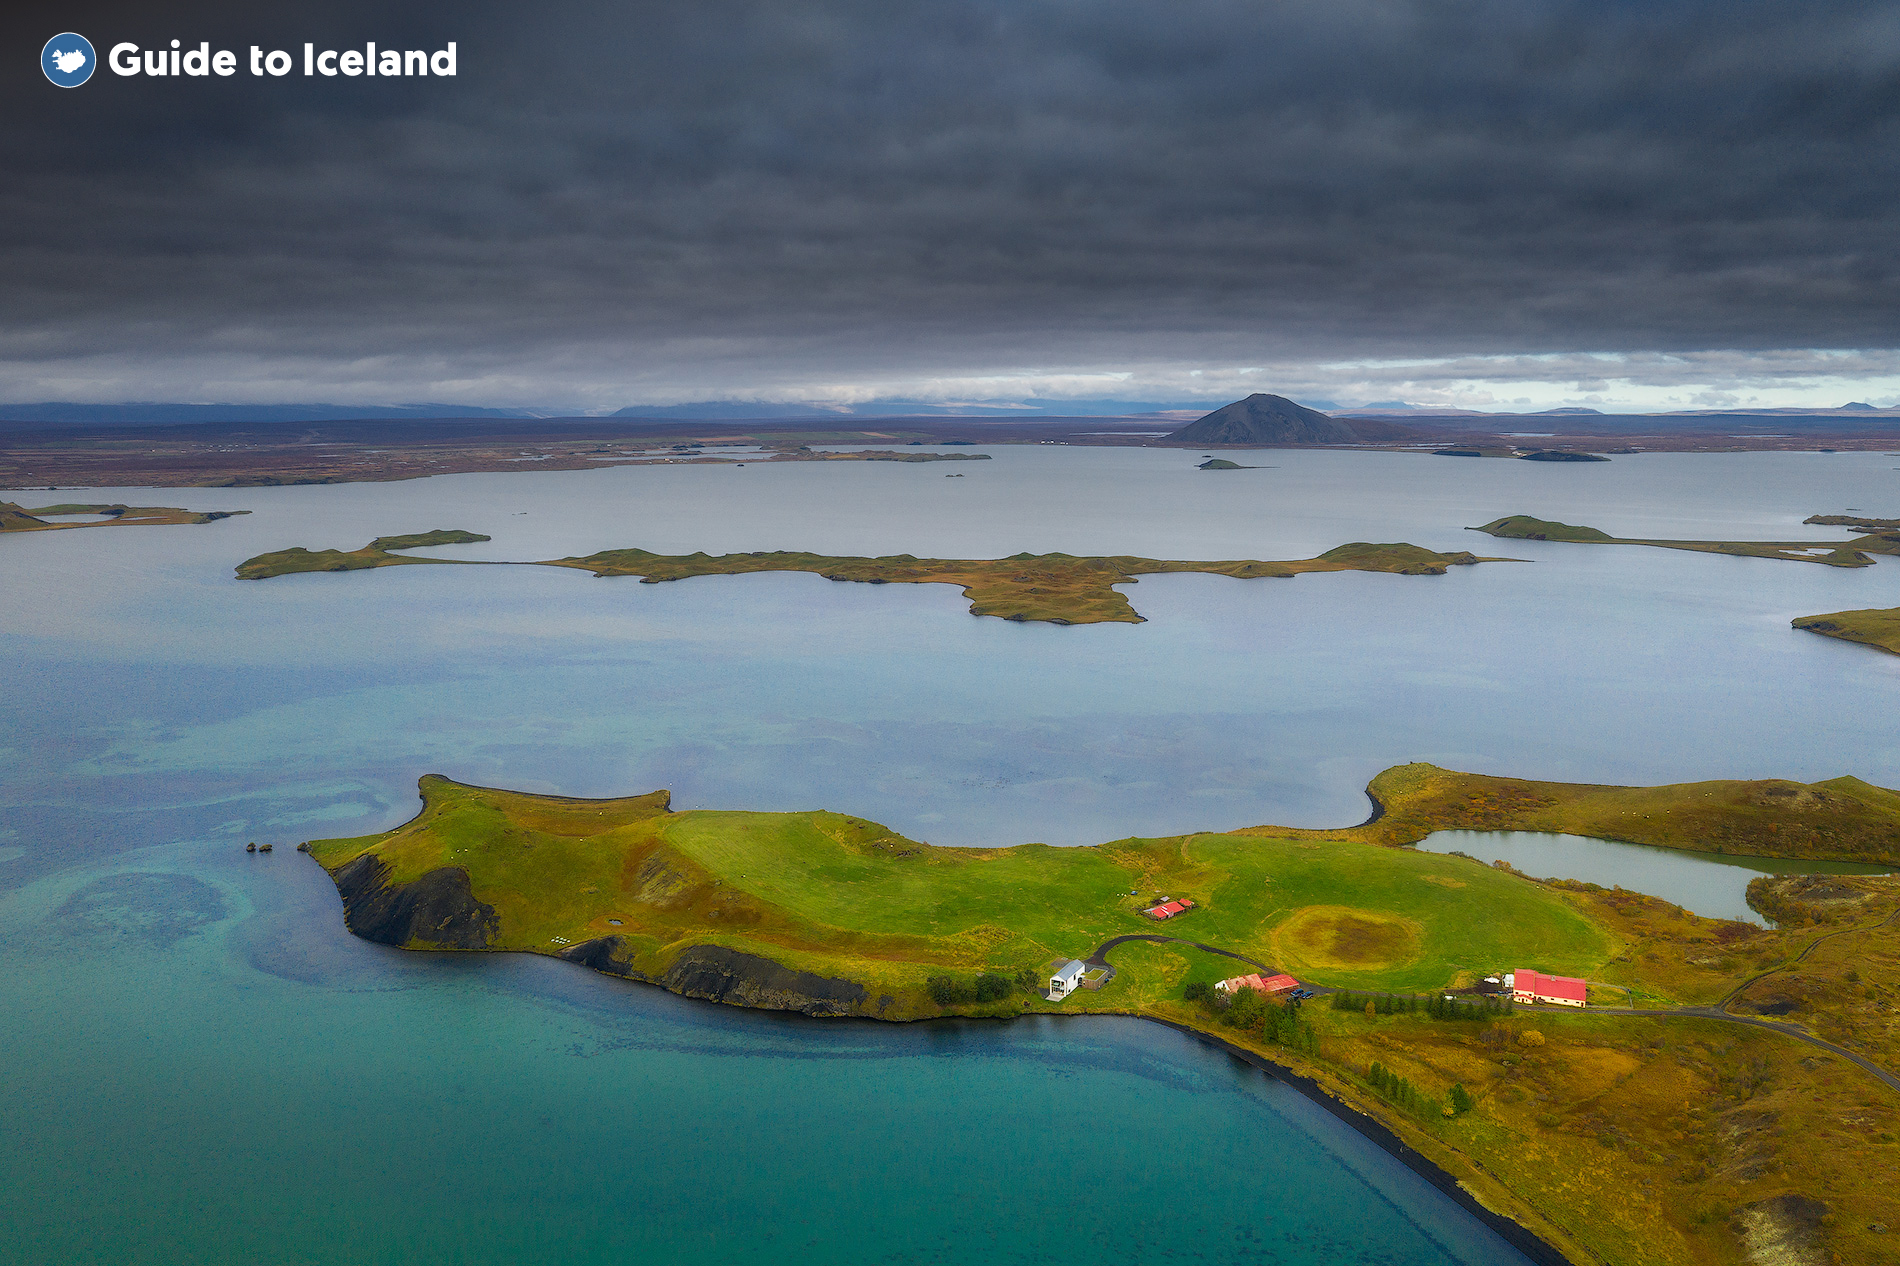 Myvatn is the name for a collection of stunning lakes renowned for their birdlife in north Iceland.